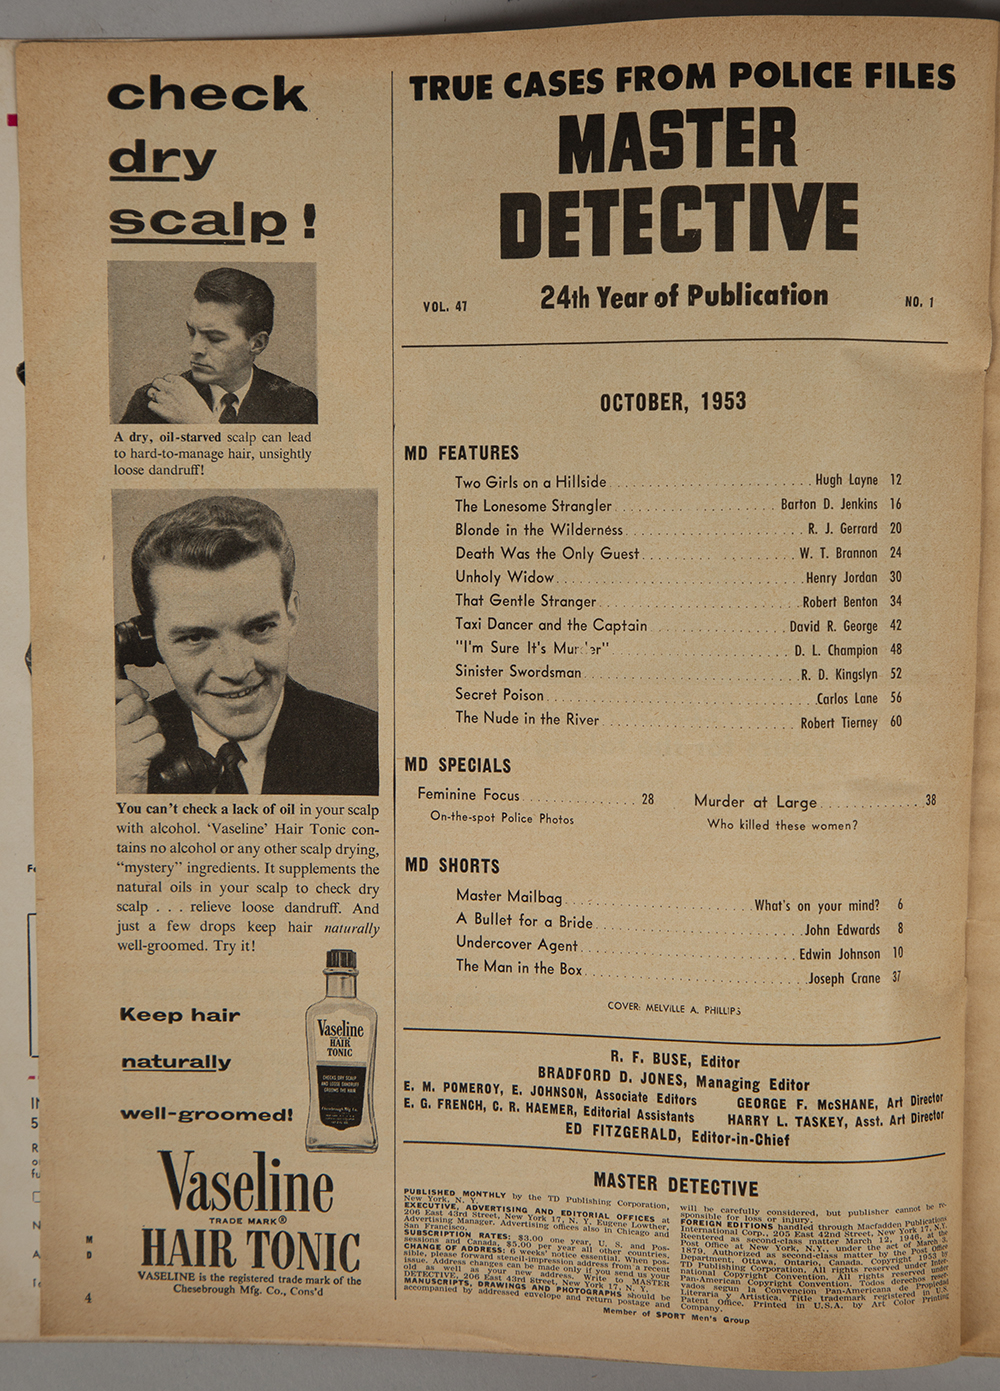 Table of contents page from the October 1953 issue of Master Detective magazine crediting the cover artist